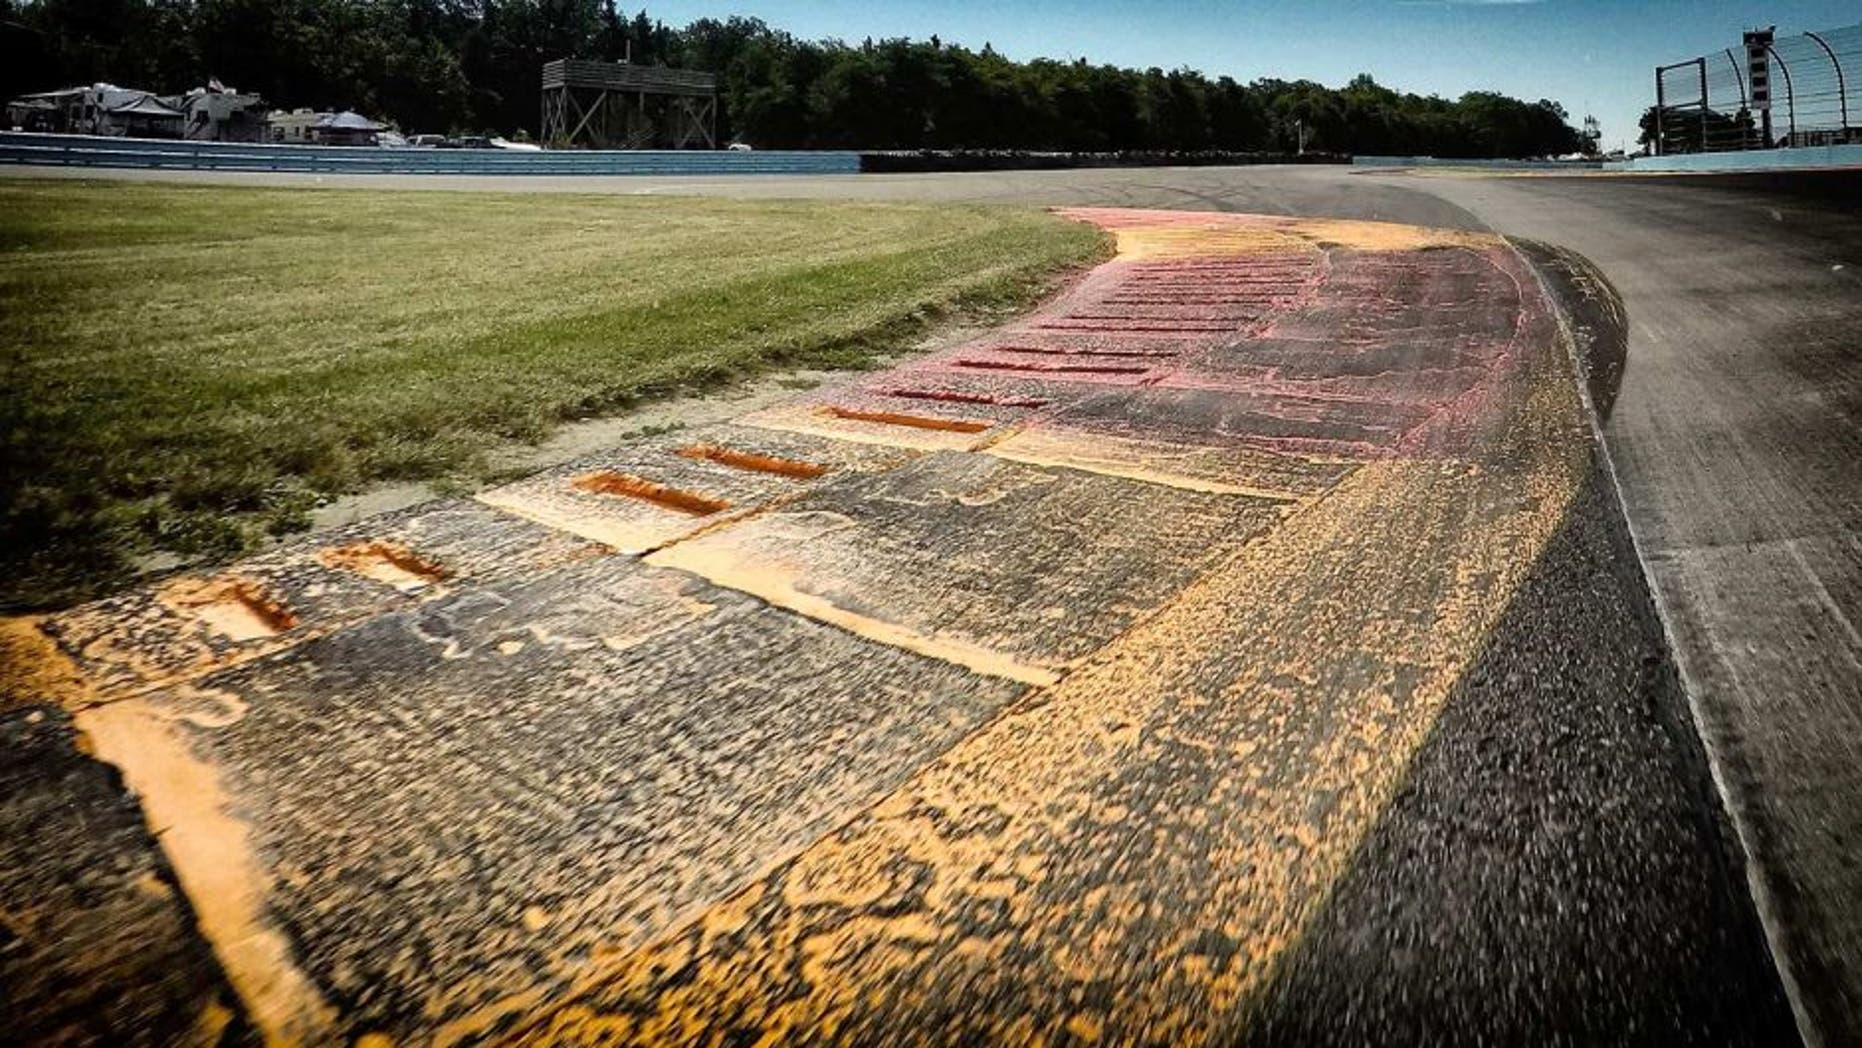 WATKINS GLEN, NY - AUGUST 08: (EDITOR'S NOTE: Image was processed using digital filters.) A general view of the track prior to qualifying for the NASCAR Sprint Cup Series Cheez-It 355 at Watkins Glen International on August 8, 2015 in Watkins Glen, New York. (Photo by Chris Graythen/Getty Images)